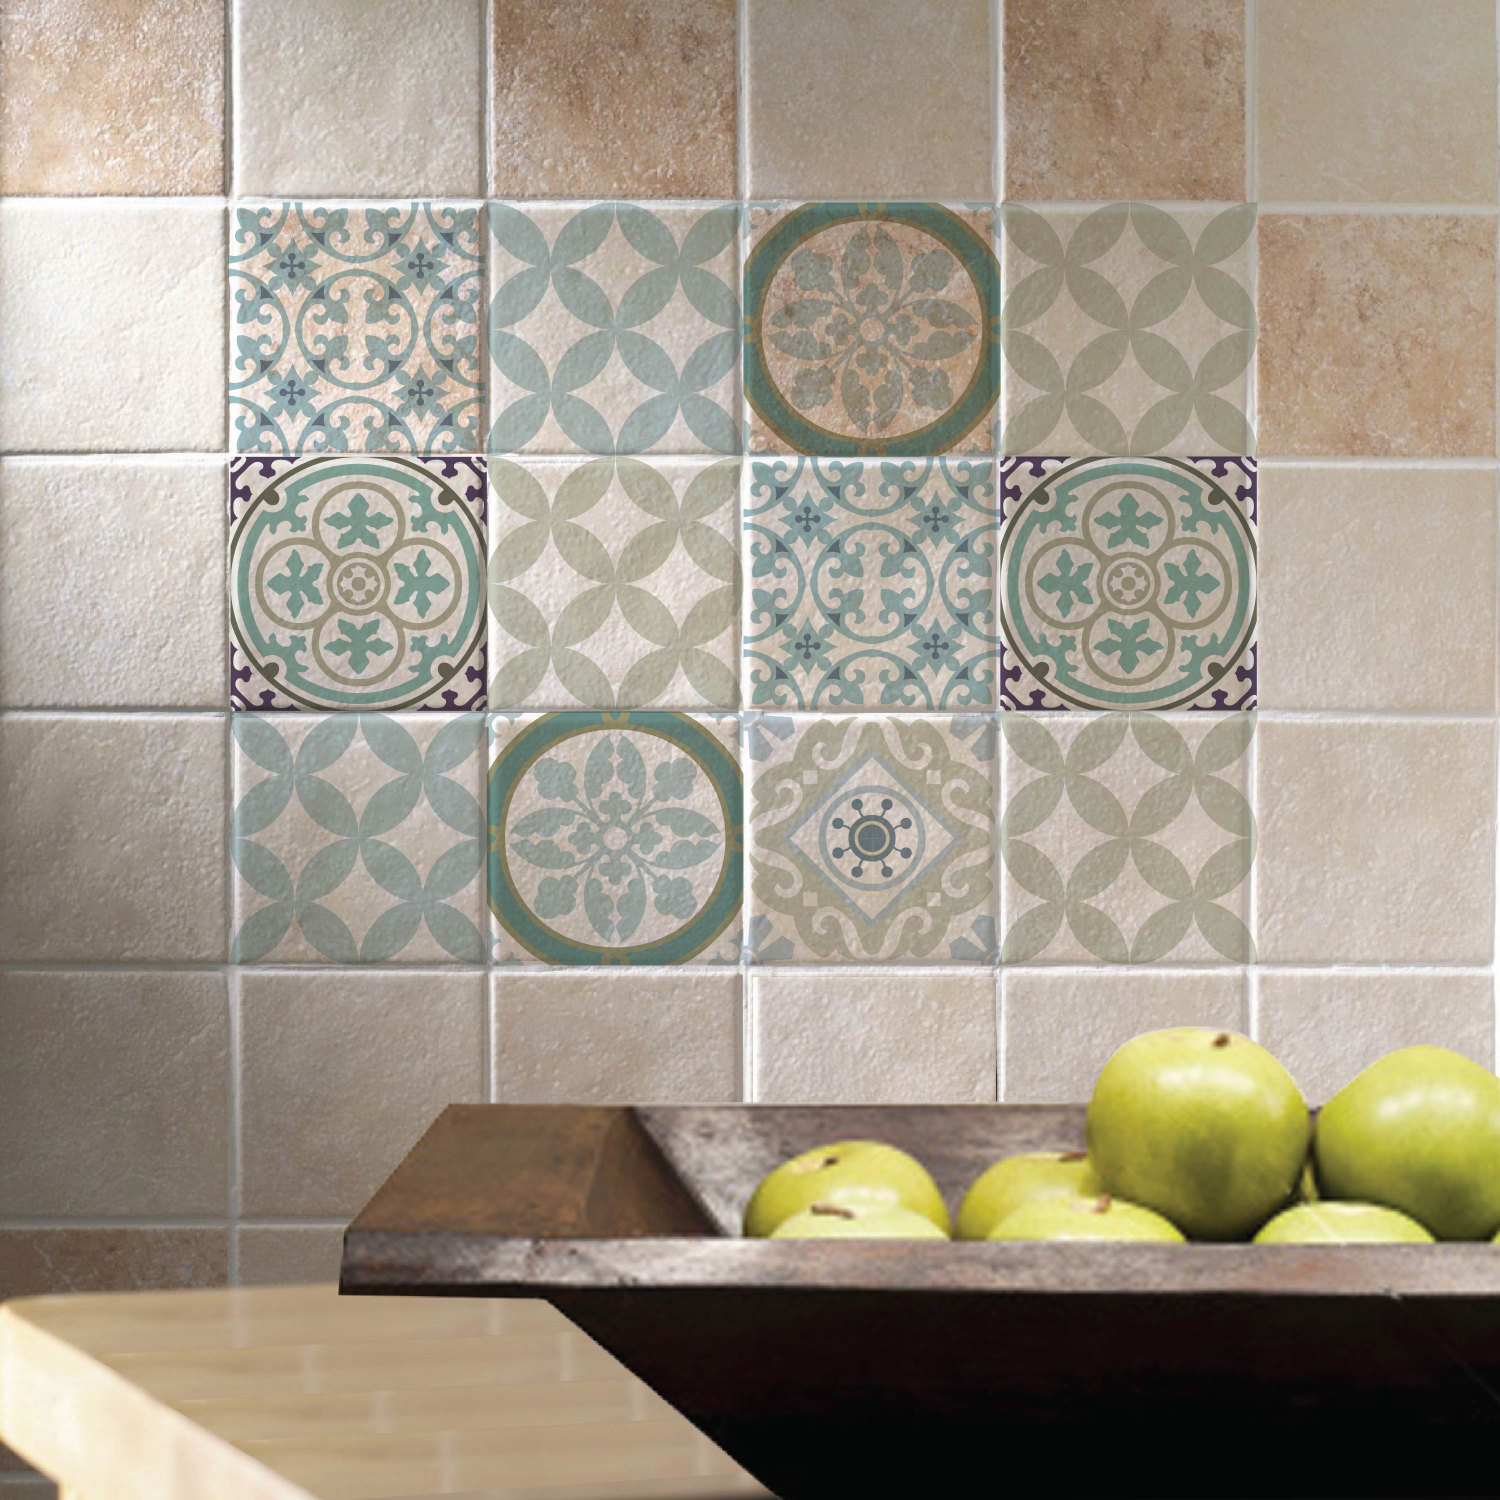 Mix Tile Decals  Kitchen/Bathroom tiles vinyl floor tiles free shipping - design 314